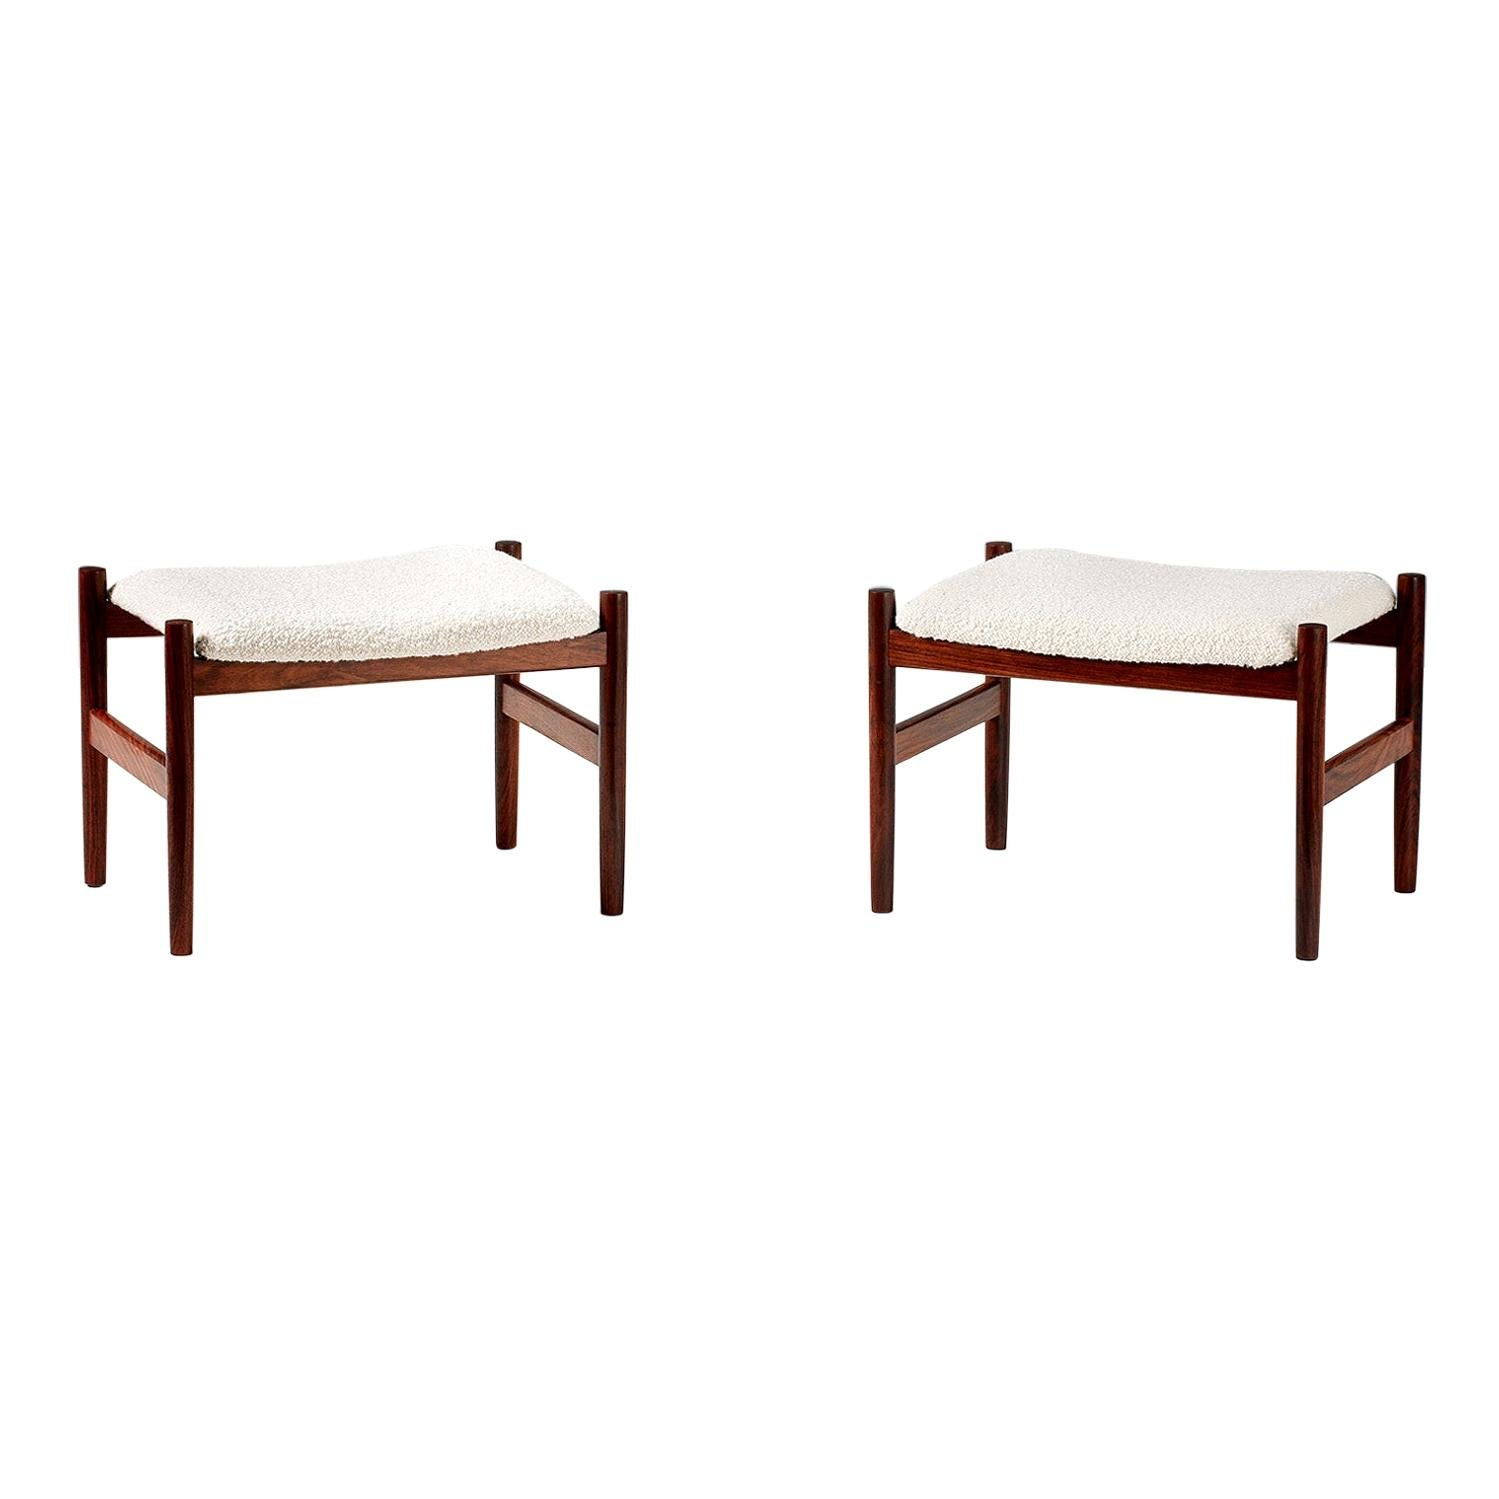 Boucle Wool Vintage Rosewood Stools by Spottrup, Denmark, 1960s